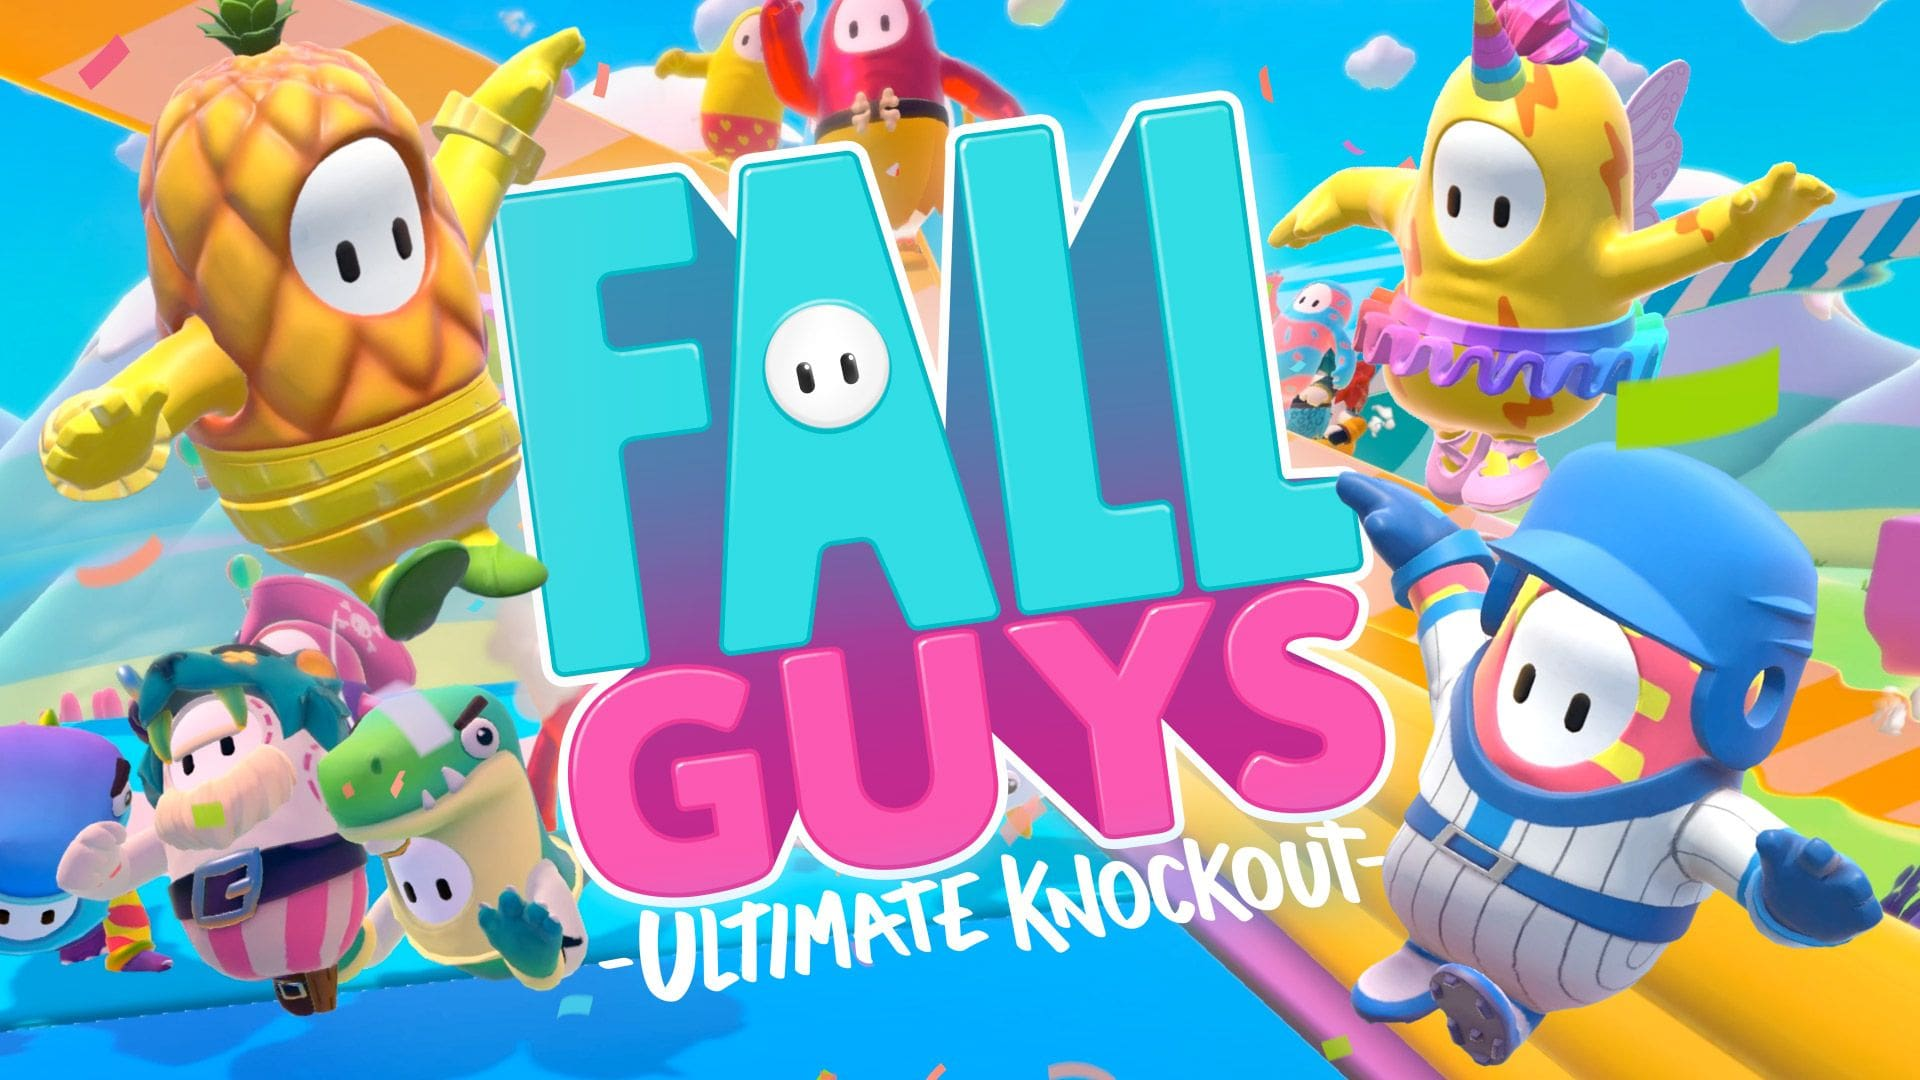 Fall Guys Wallpaper